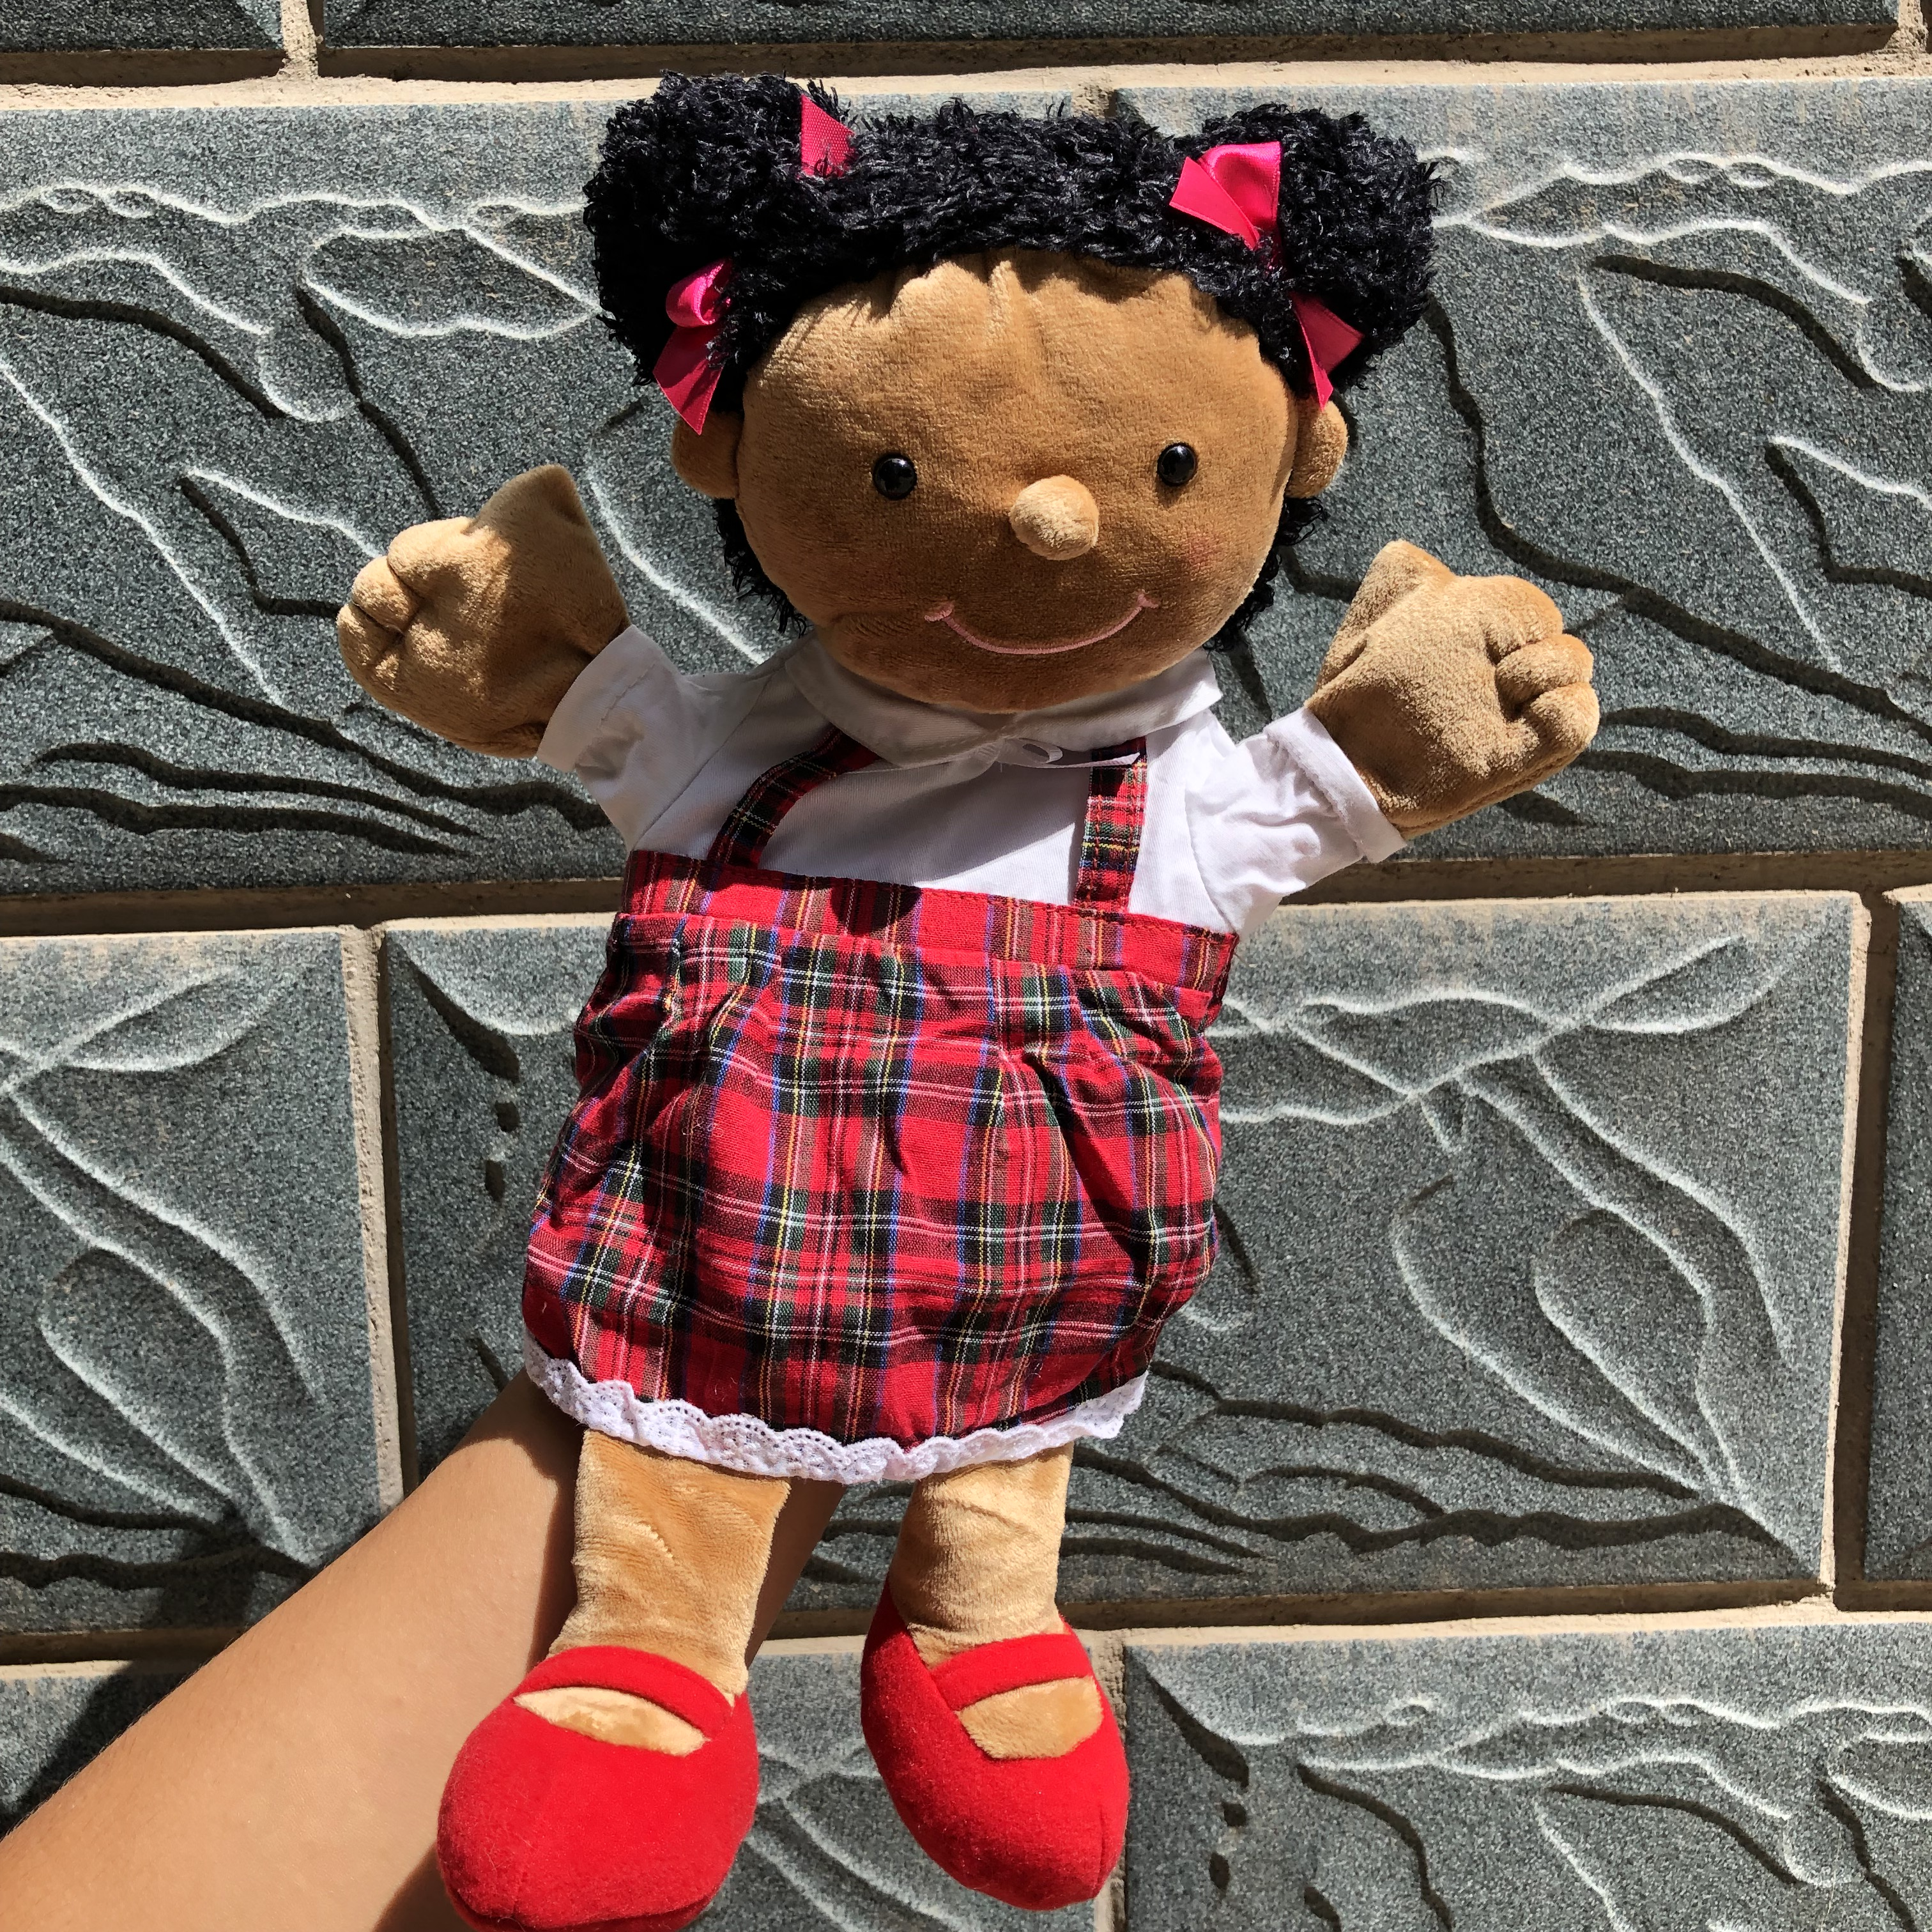 30cm Black People Children Maidservant Maid Humanoid Doll Plush Toys Hand Puppets Christmas Costume Props